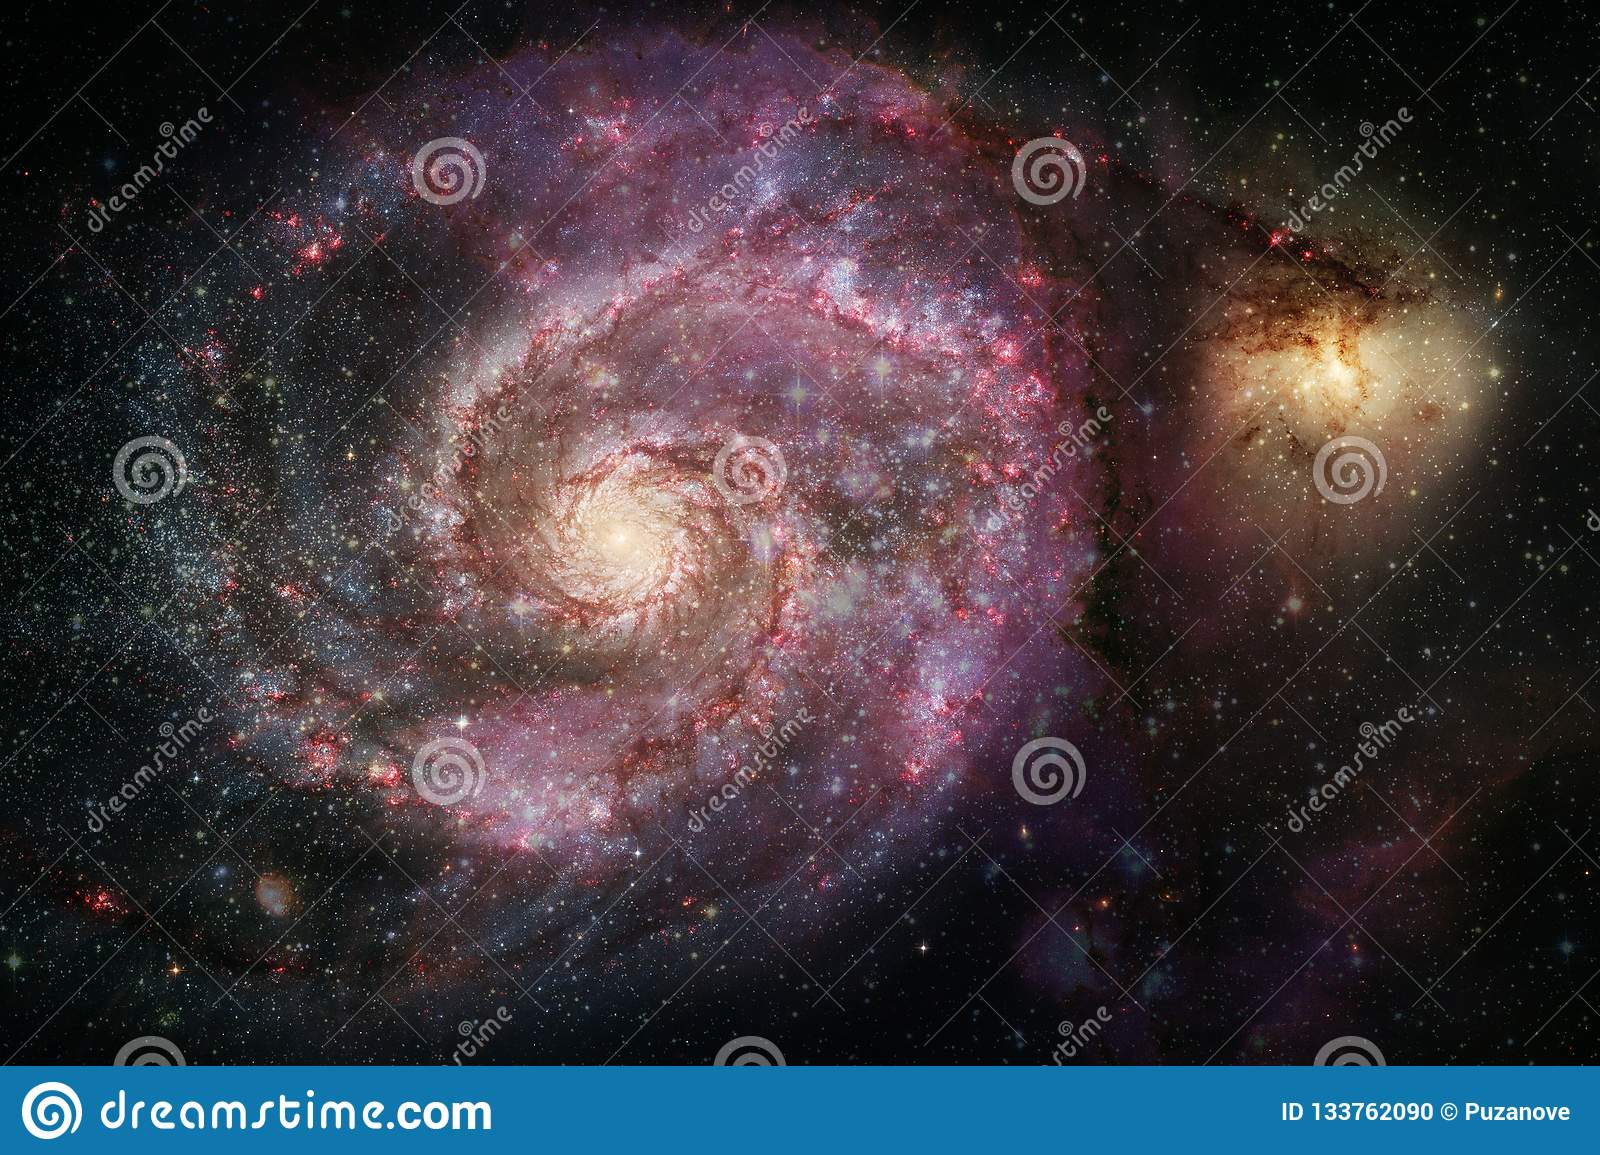 Nebulas Galaxies And Stars In Beautiful Composition Deep Space Art Stock Photo Image Of Fantasy Cluster 133762090